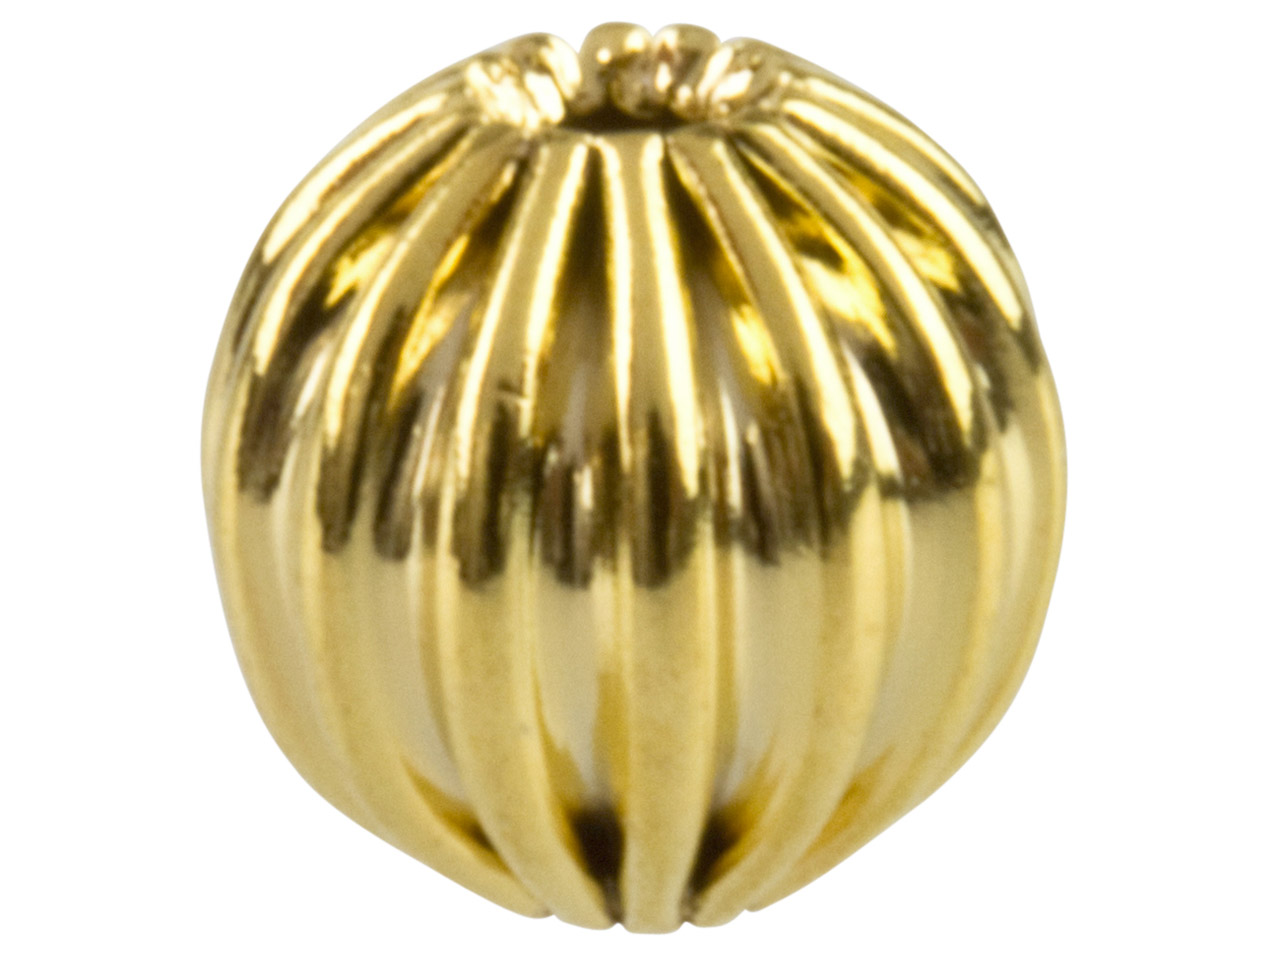 Gold Plated Corrugated Round Beads 5mm, 2 Hole, Pack of 25